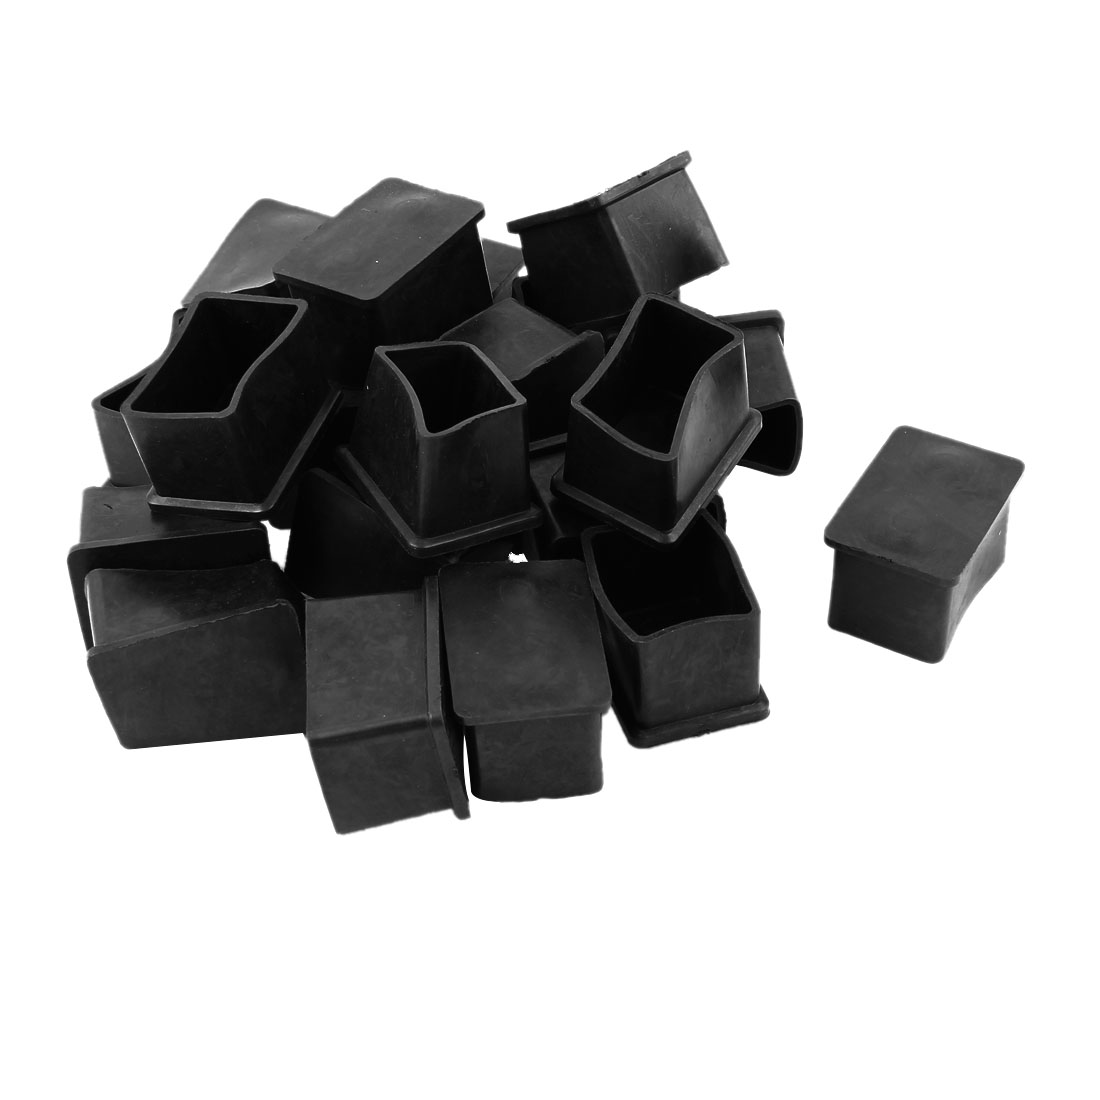 20 Pcs Rectangle Rubber Furniture Table Foot Leg Cover Pad Floor Protector 38mm x 25mm